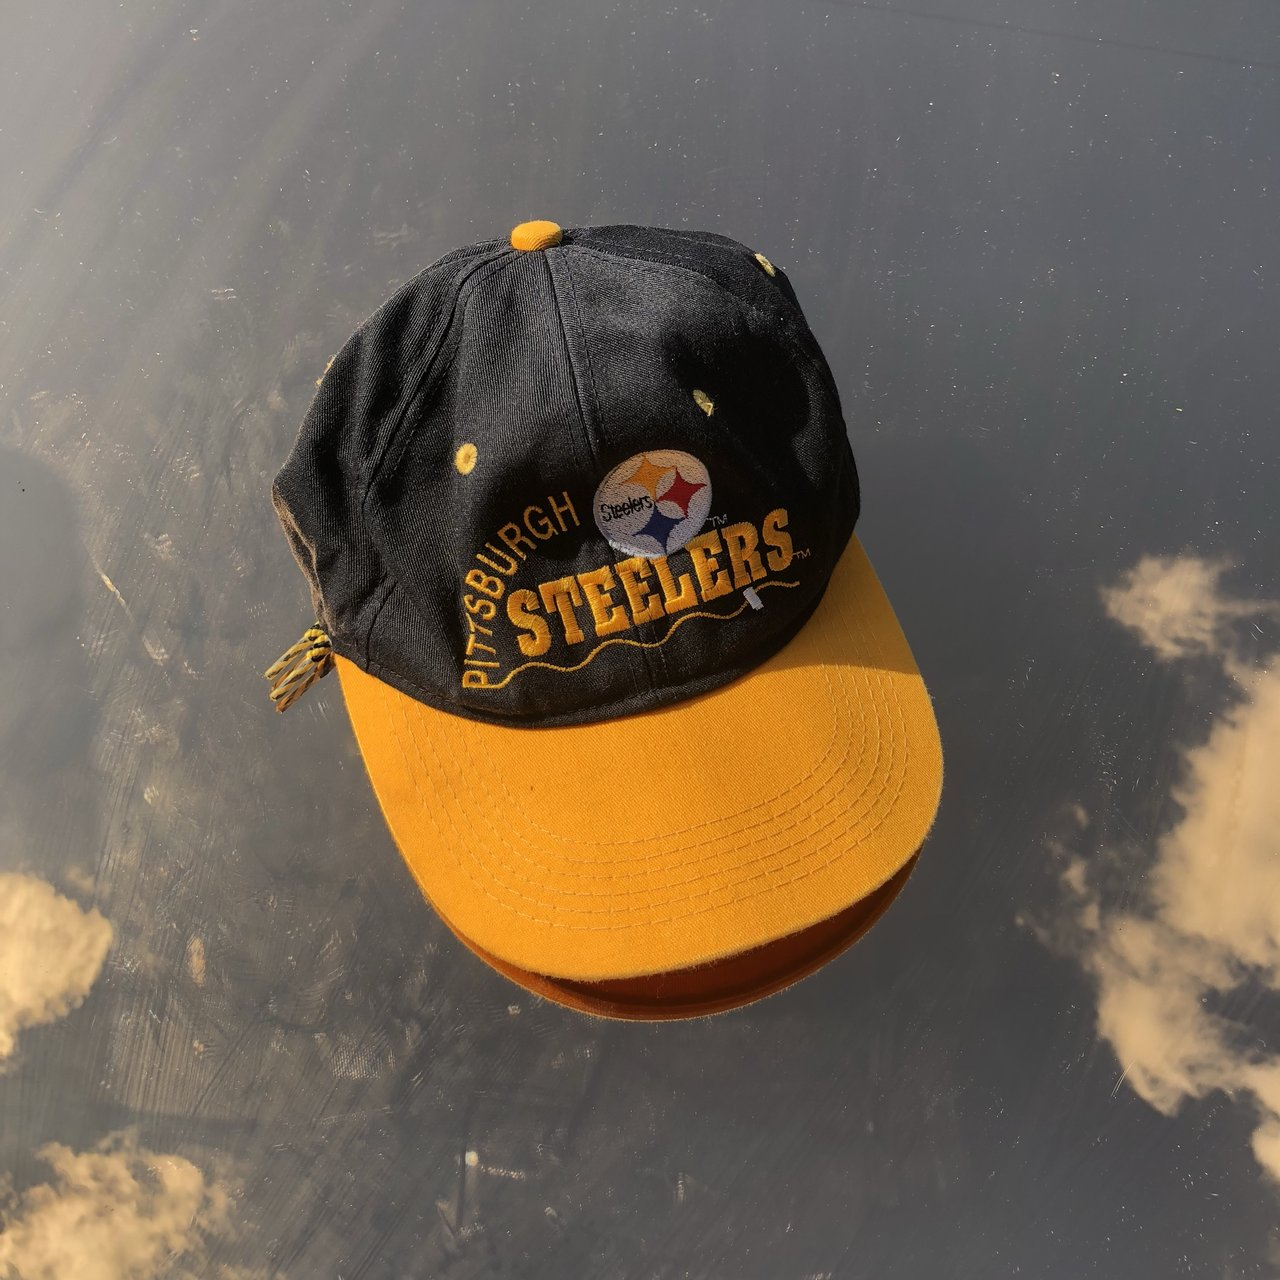 90s vintage Pittsburgh Steelers baseball cap with an amazing - Depop 429f0800377